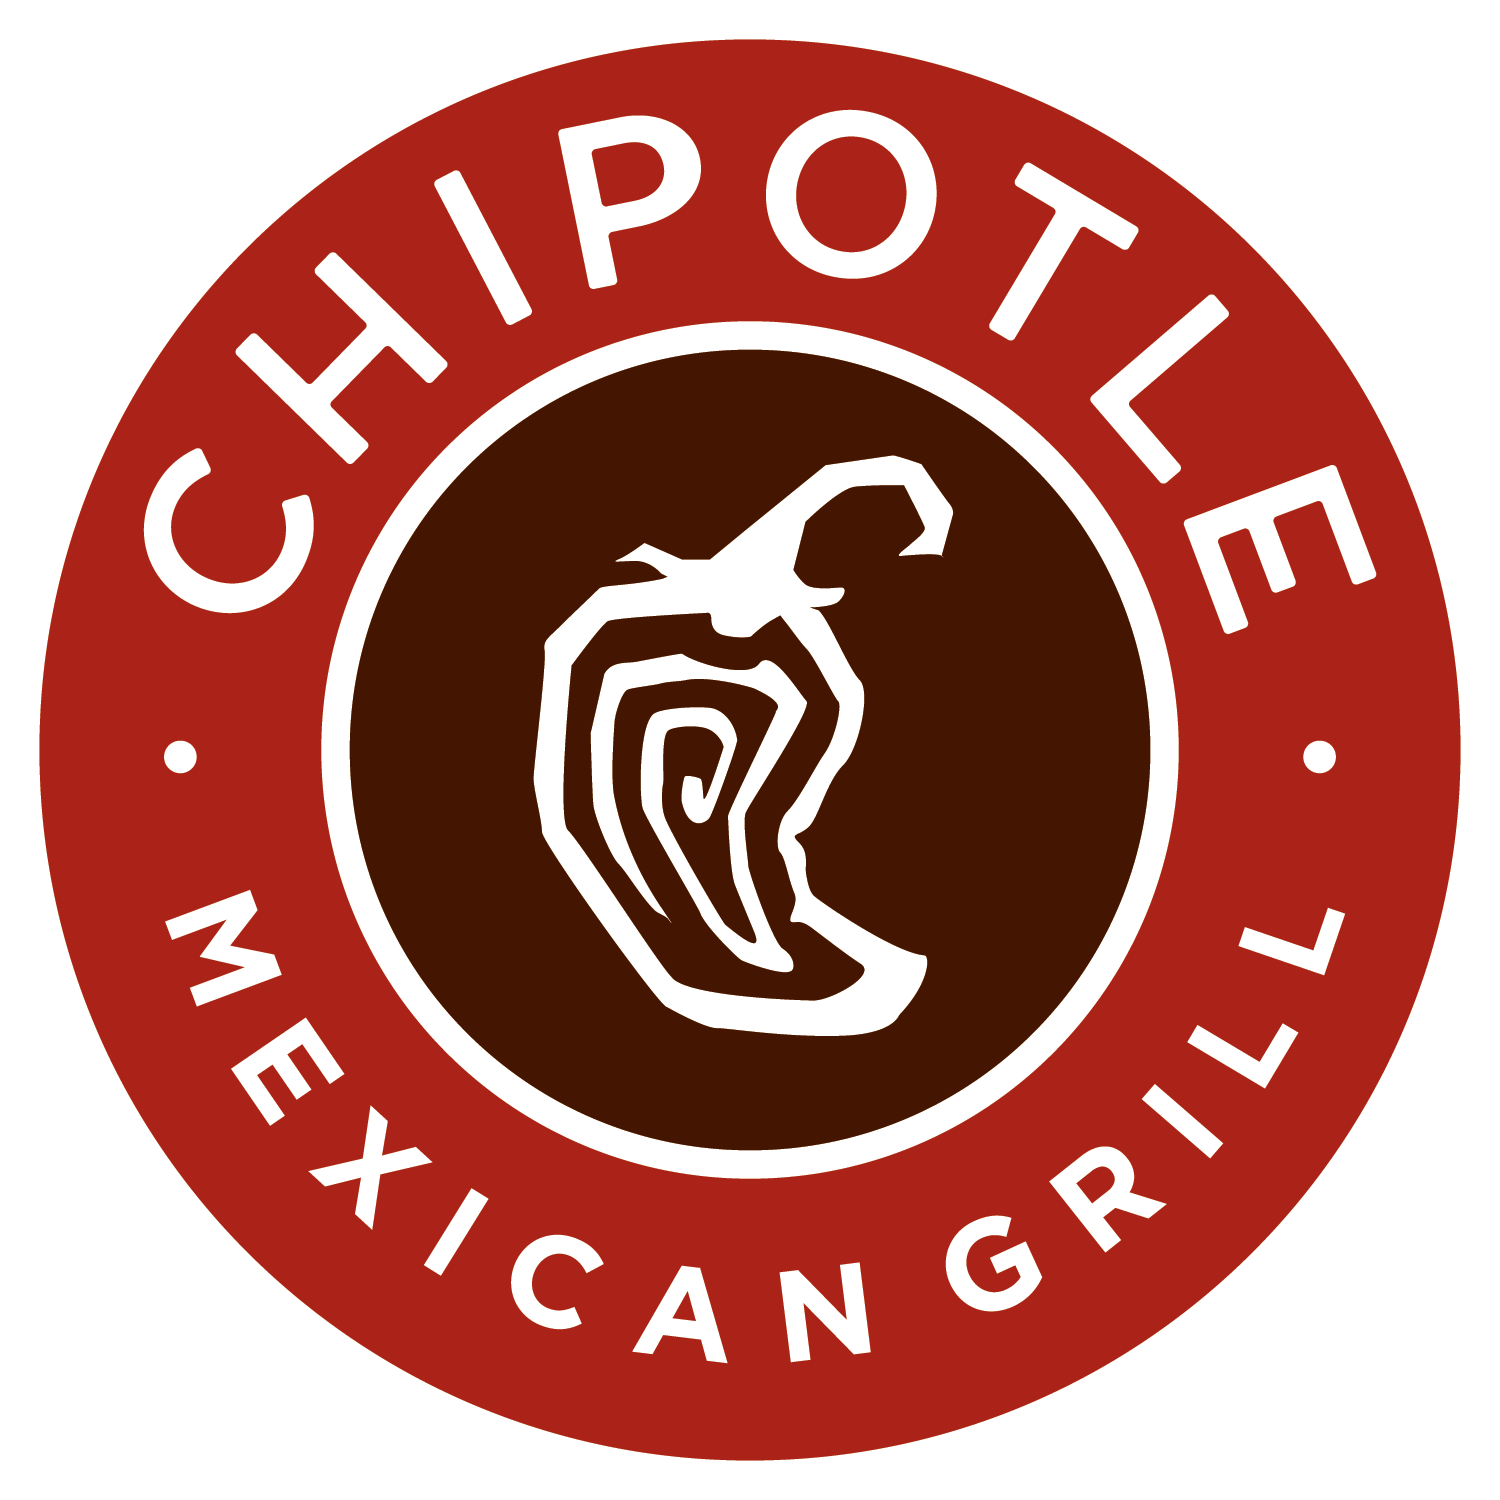 Why Chipotle Mexican Grill's Stock Is Worth $465